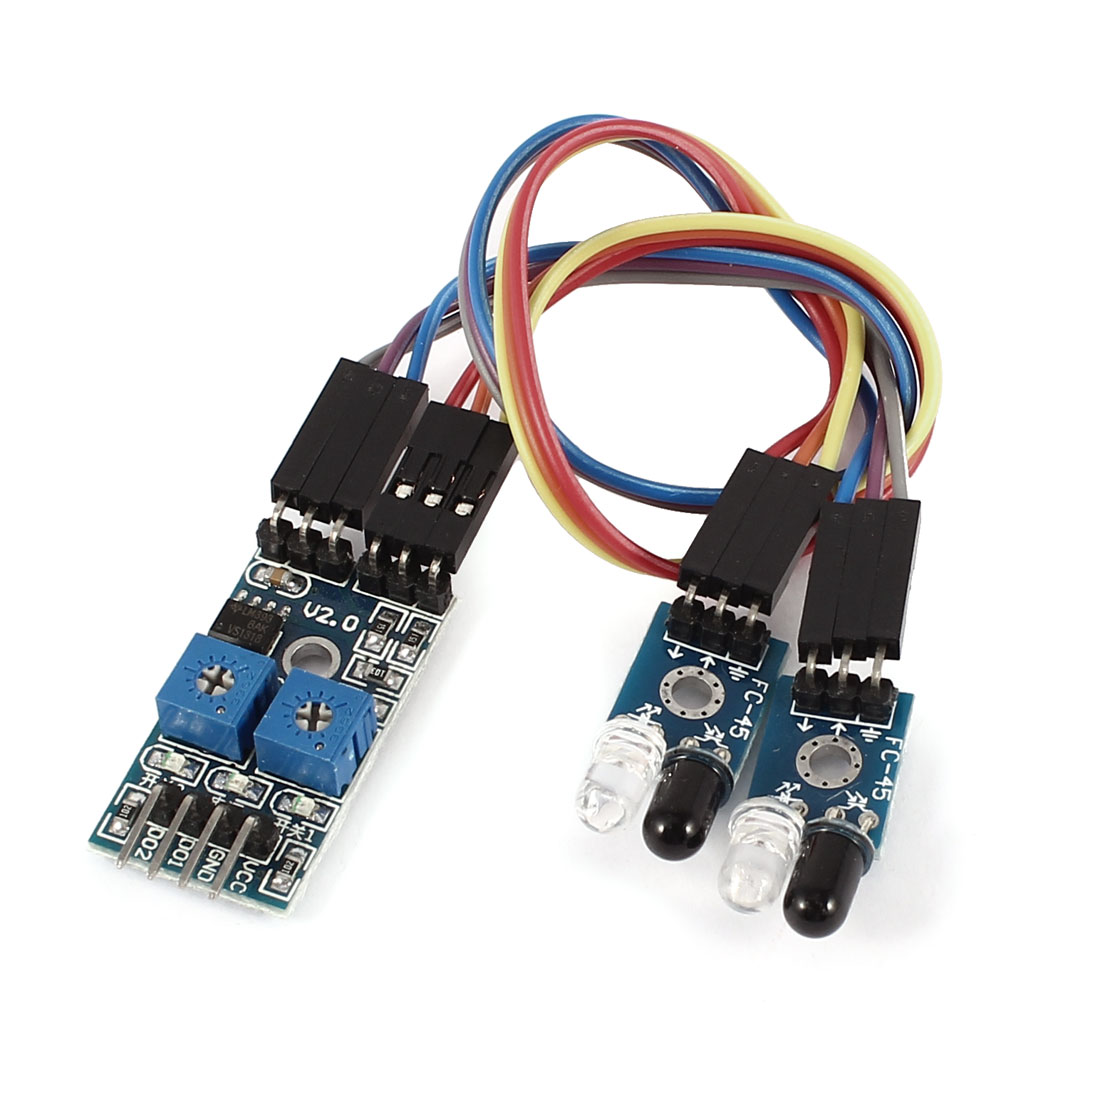 20cm Cable 2 Channel Infrared Obstacle Avoidance Sensor Module for Smart Car